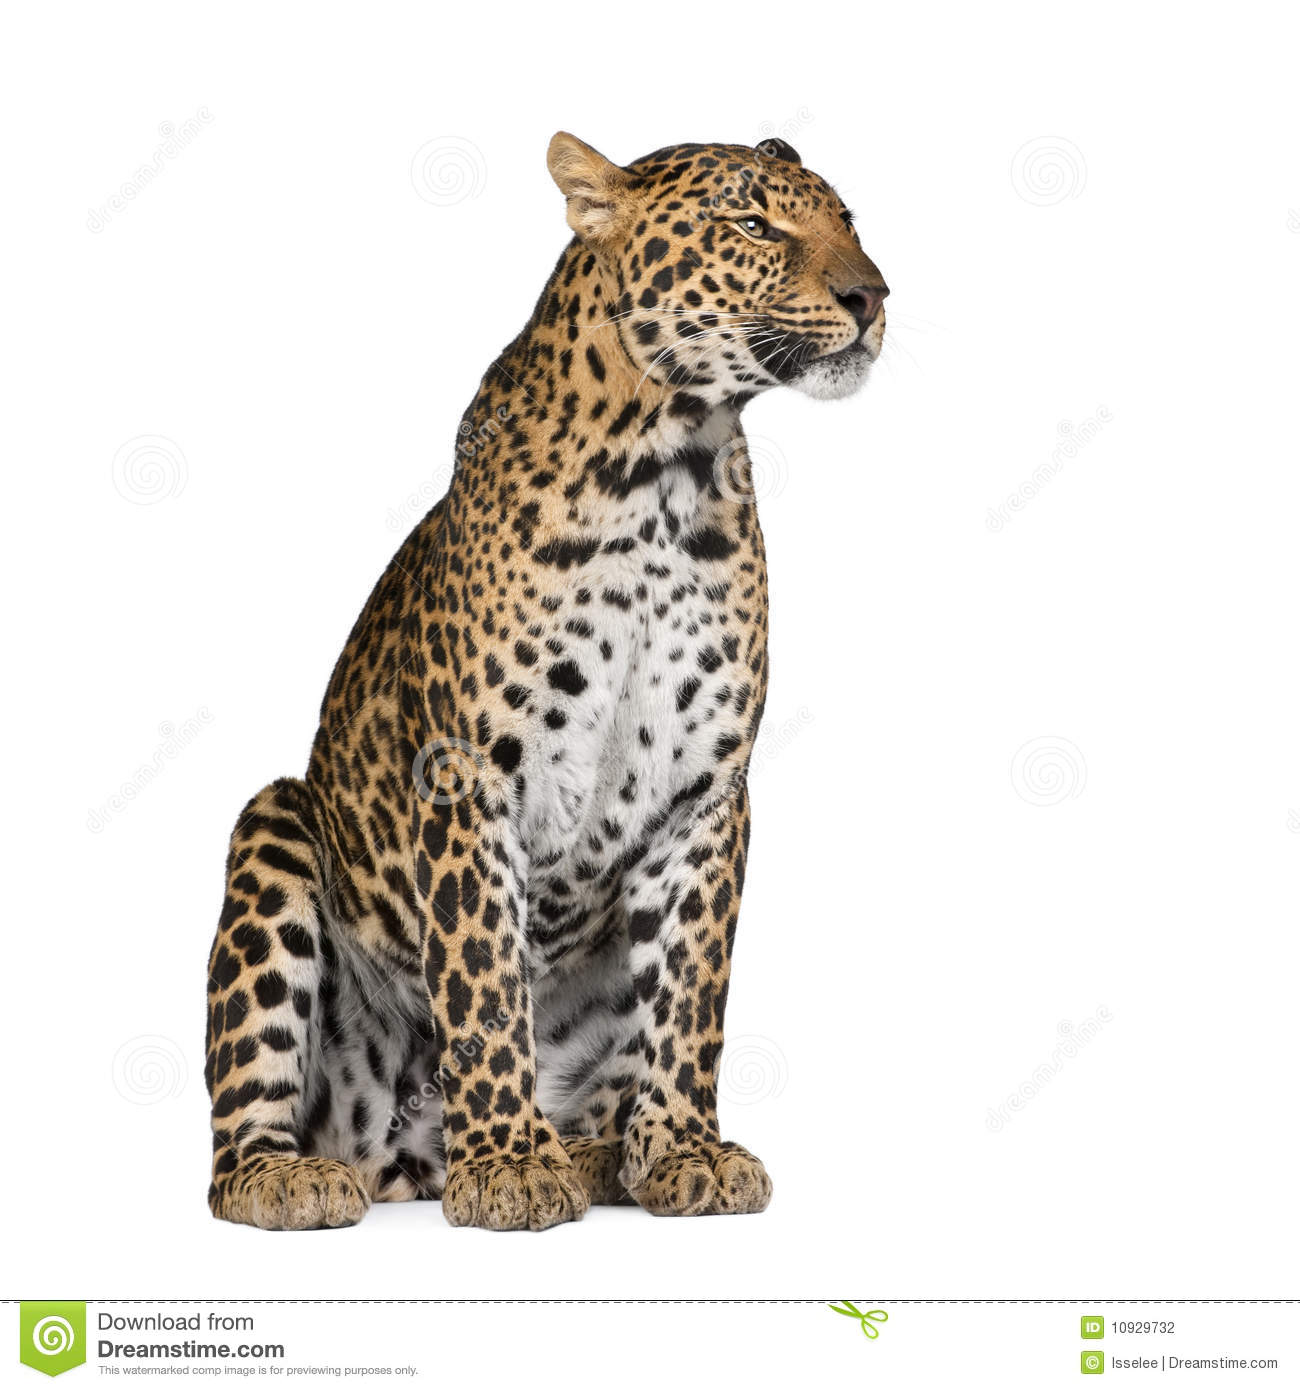 pardus map with Stock Photography Leopard Sitting Front White Background Image10929732 on Stock Image Labrador Retriever Puppy Standing Panting Months Old Isolated White Image30816291 besides Black Leopard Enoch additionally Leatherback Sea Turtle furthermore 6113245244 additionally Royalty Free Stock Images Leopard Front White Background Image10929869.